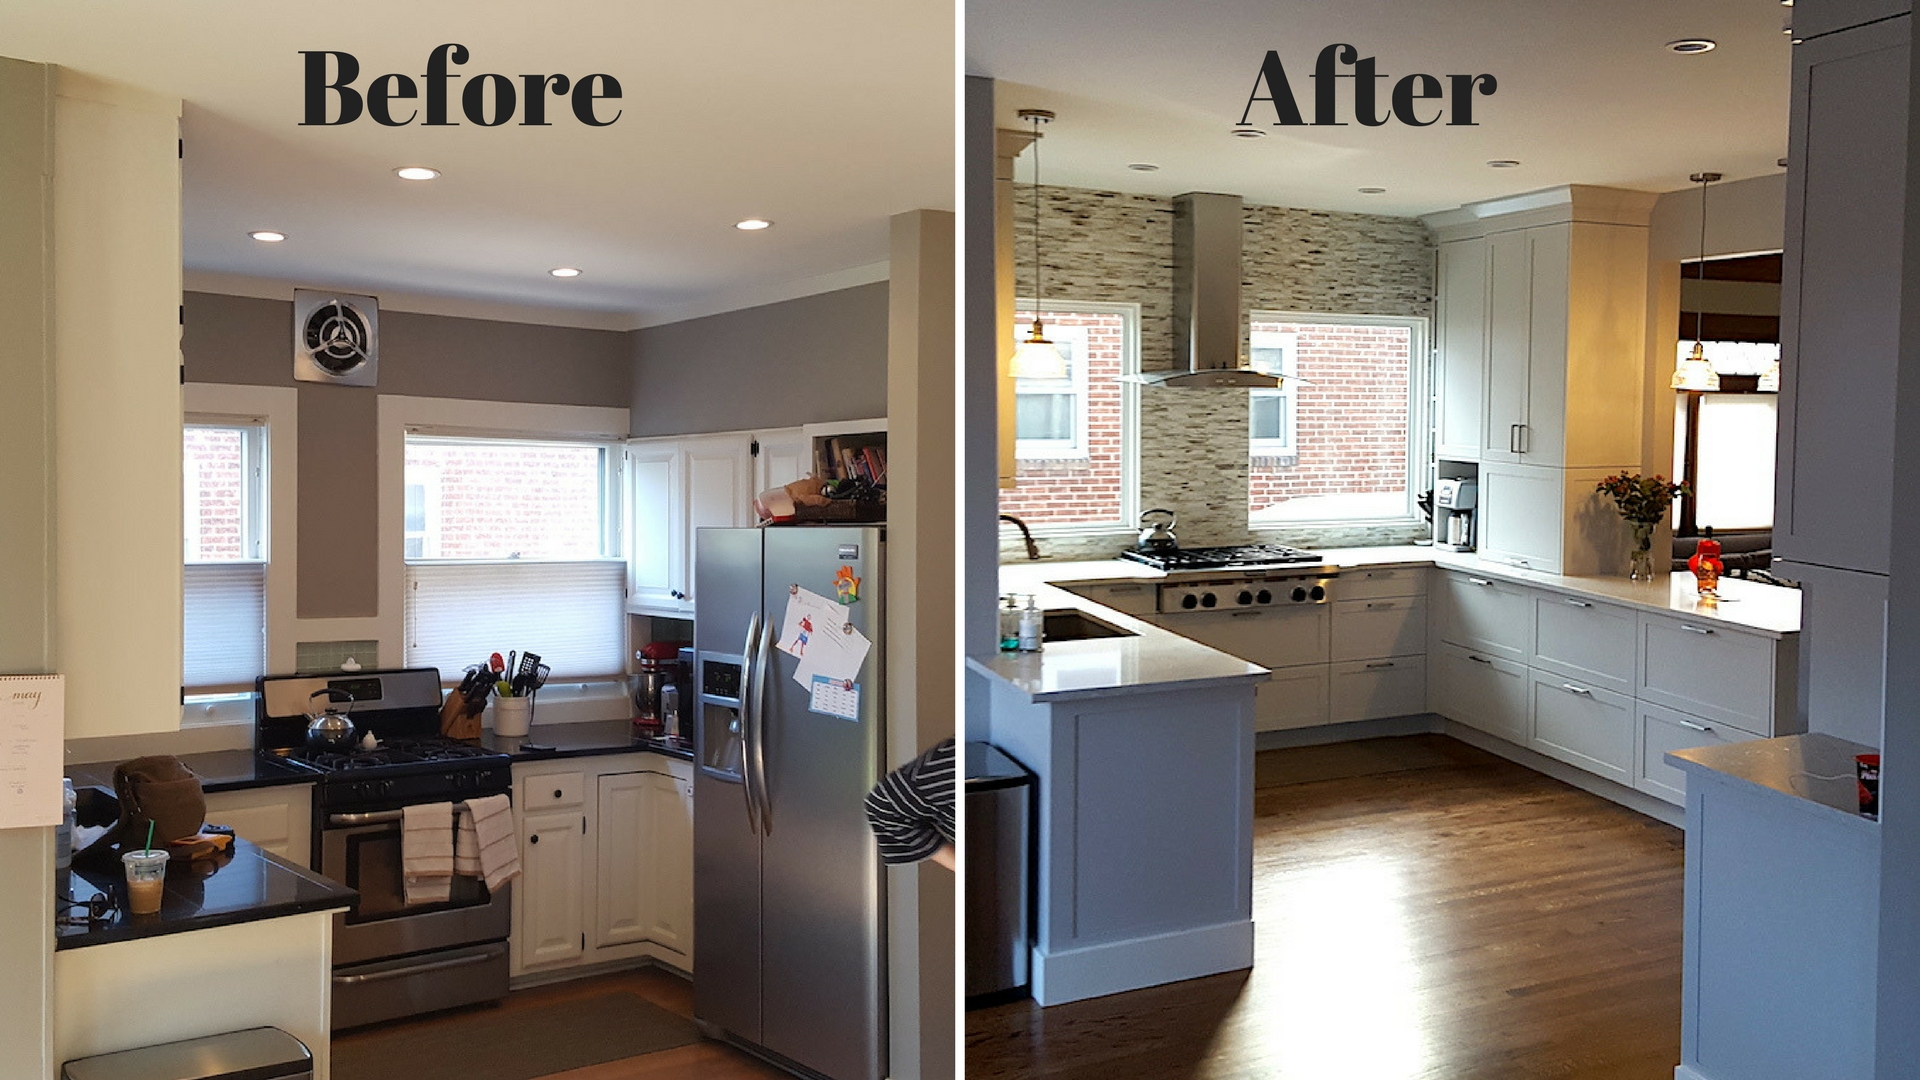 3 Amazing Kitchen Remodel Ideas - Homes By Christian ... on Kitchen Remodel Ideas  id=42014